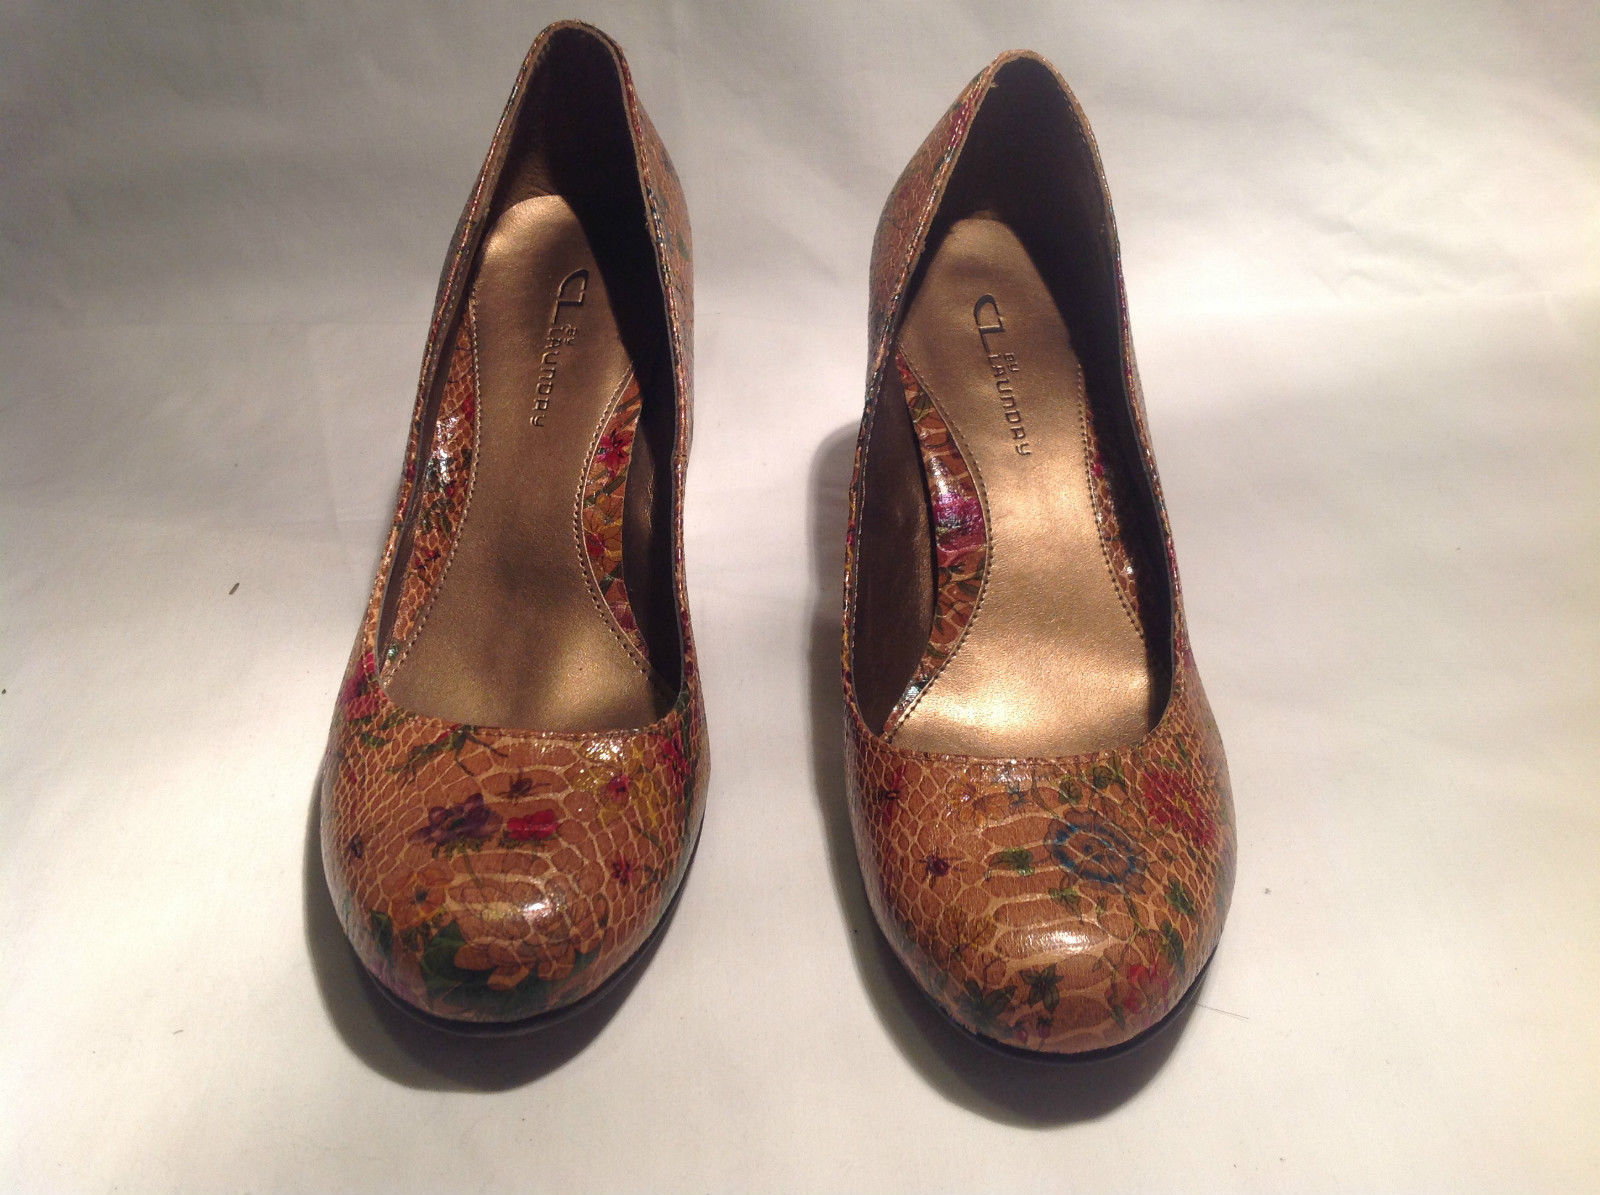 CL  Laundry Pumps Snakeskin Flower Design Size 11 Medium Good Condition